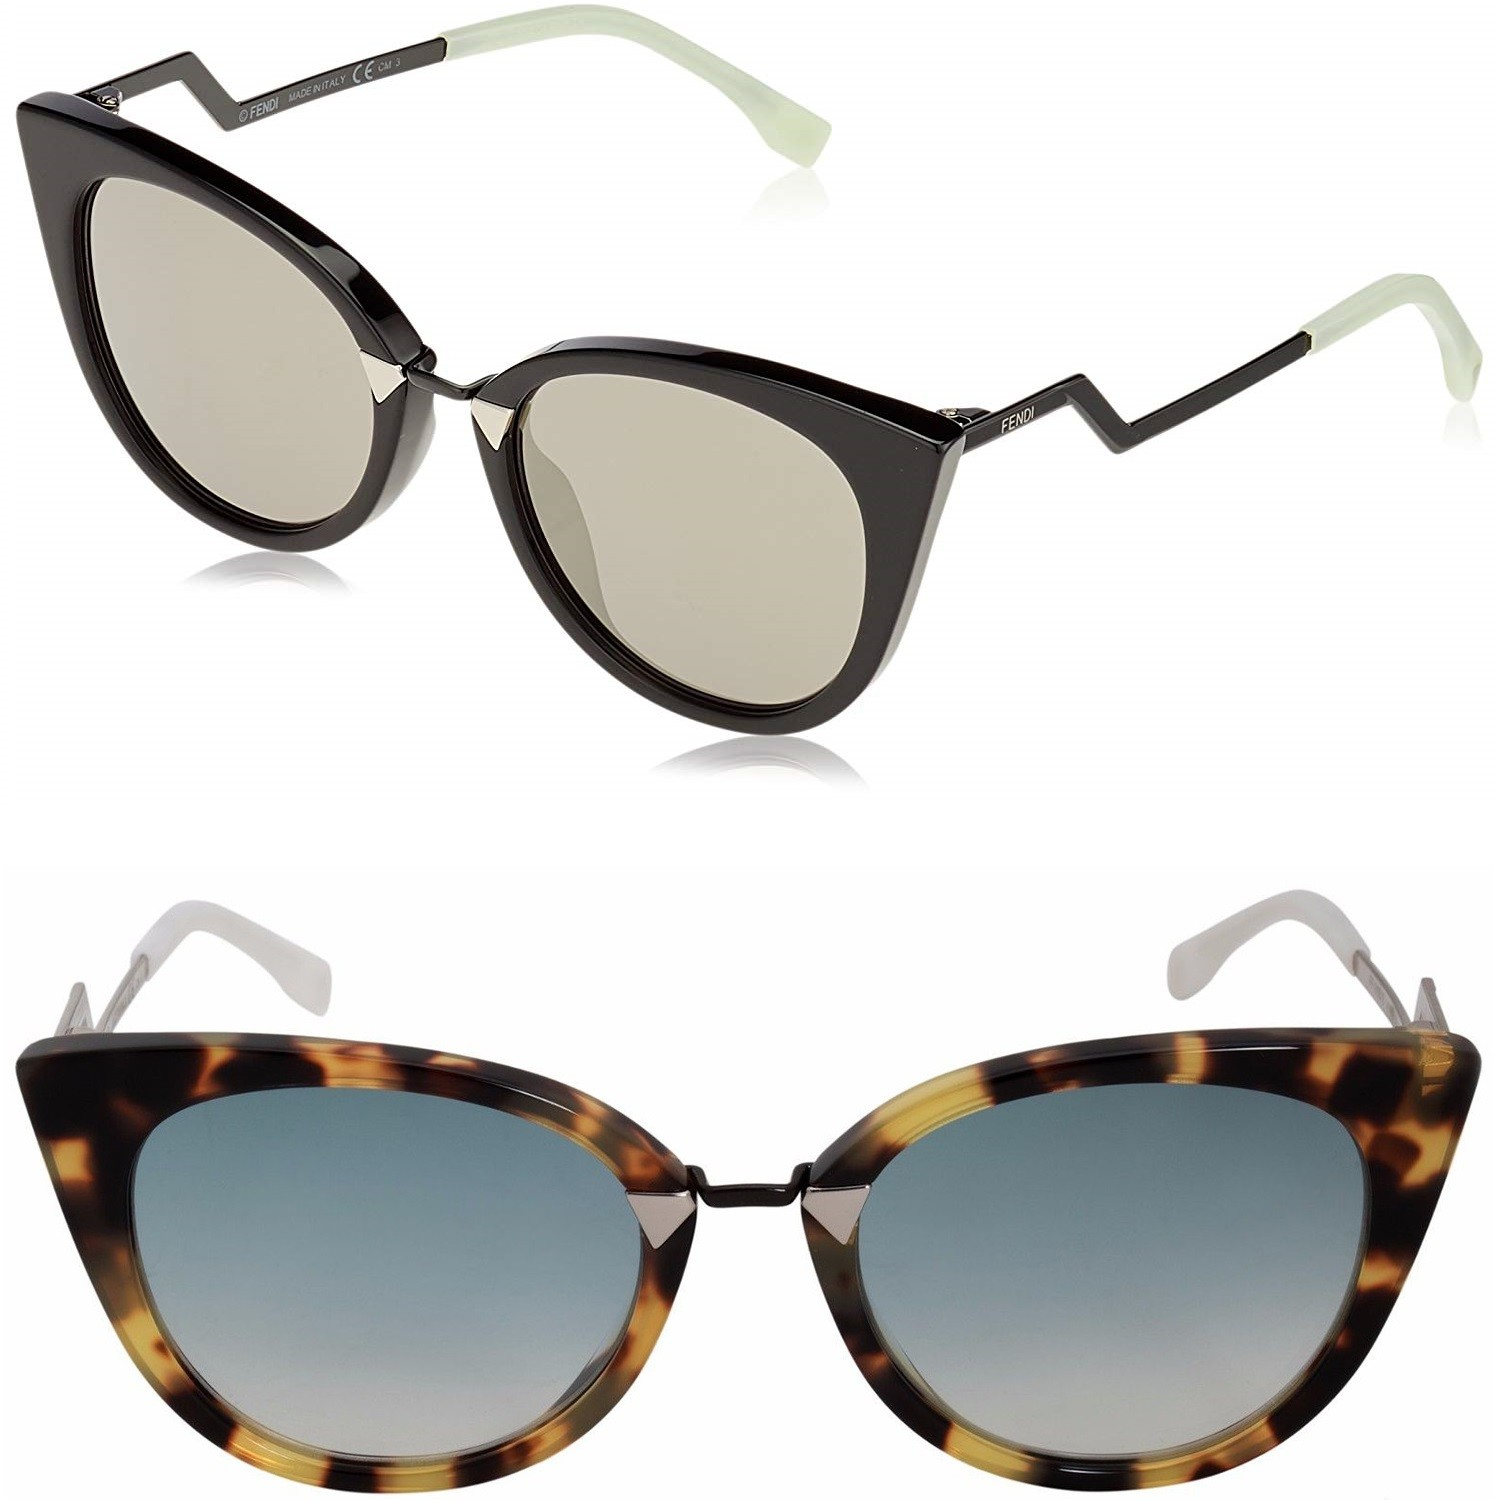 Sunglasses FENDI® - FF 0118/S mod. ORCHIDEA - luxury vintage WOMAN CAT EYE fashion, extravagant HIGH FASHION